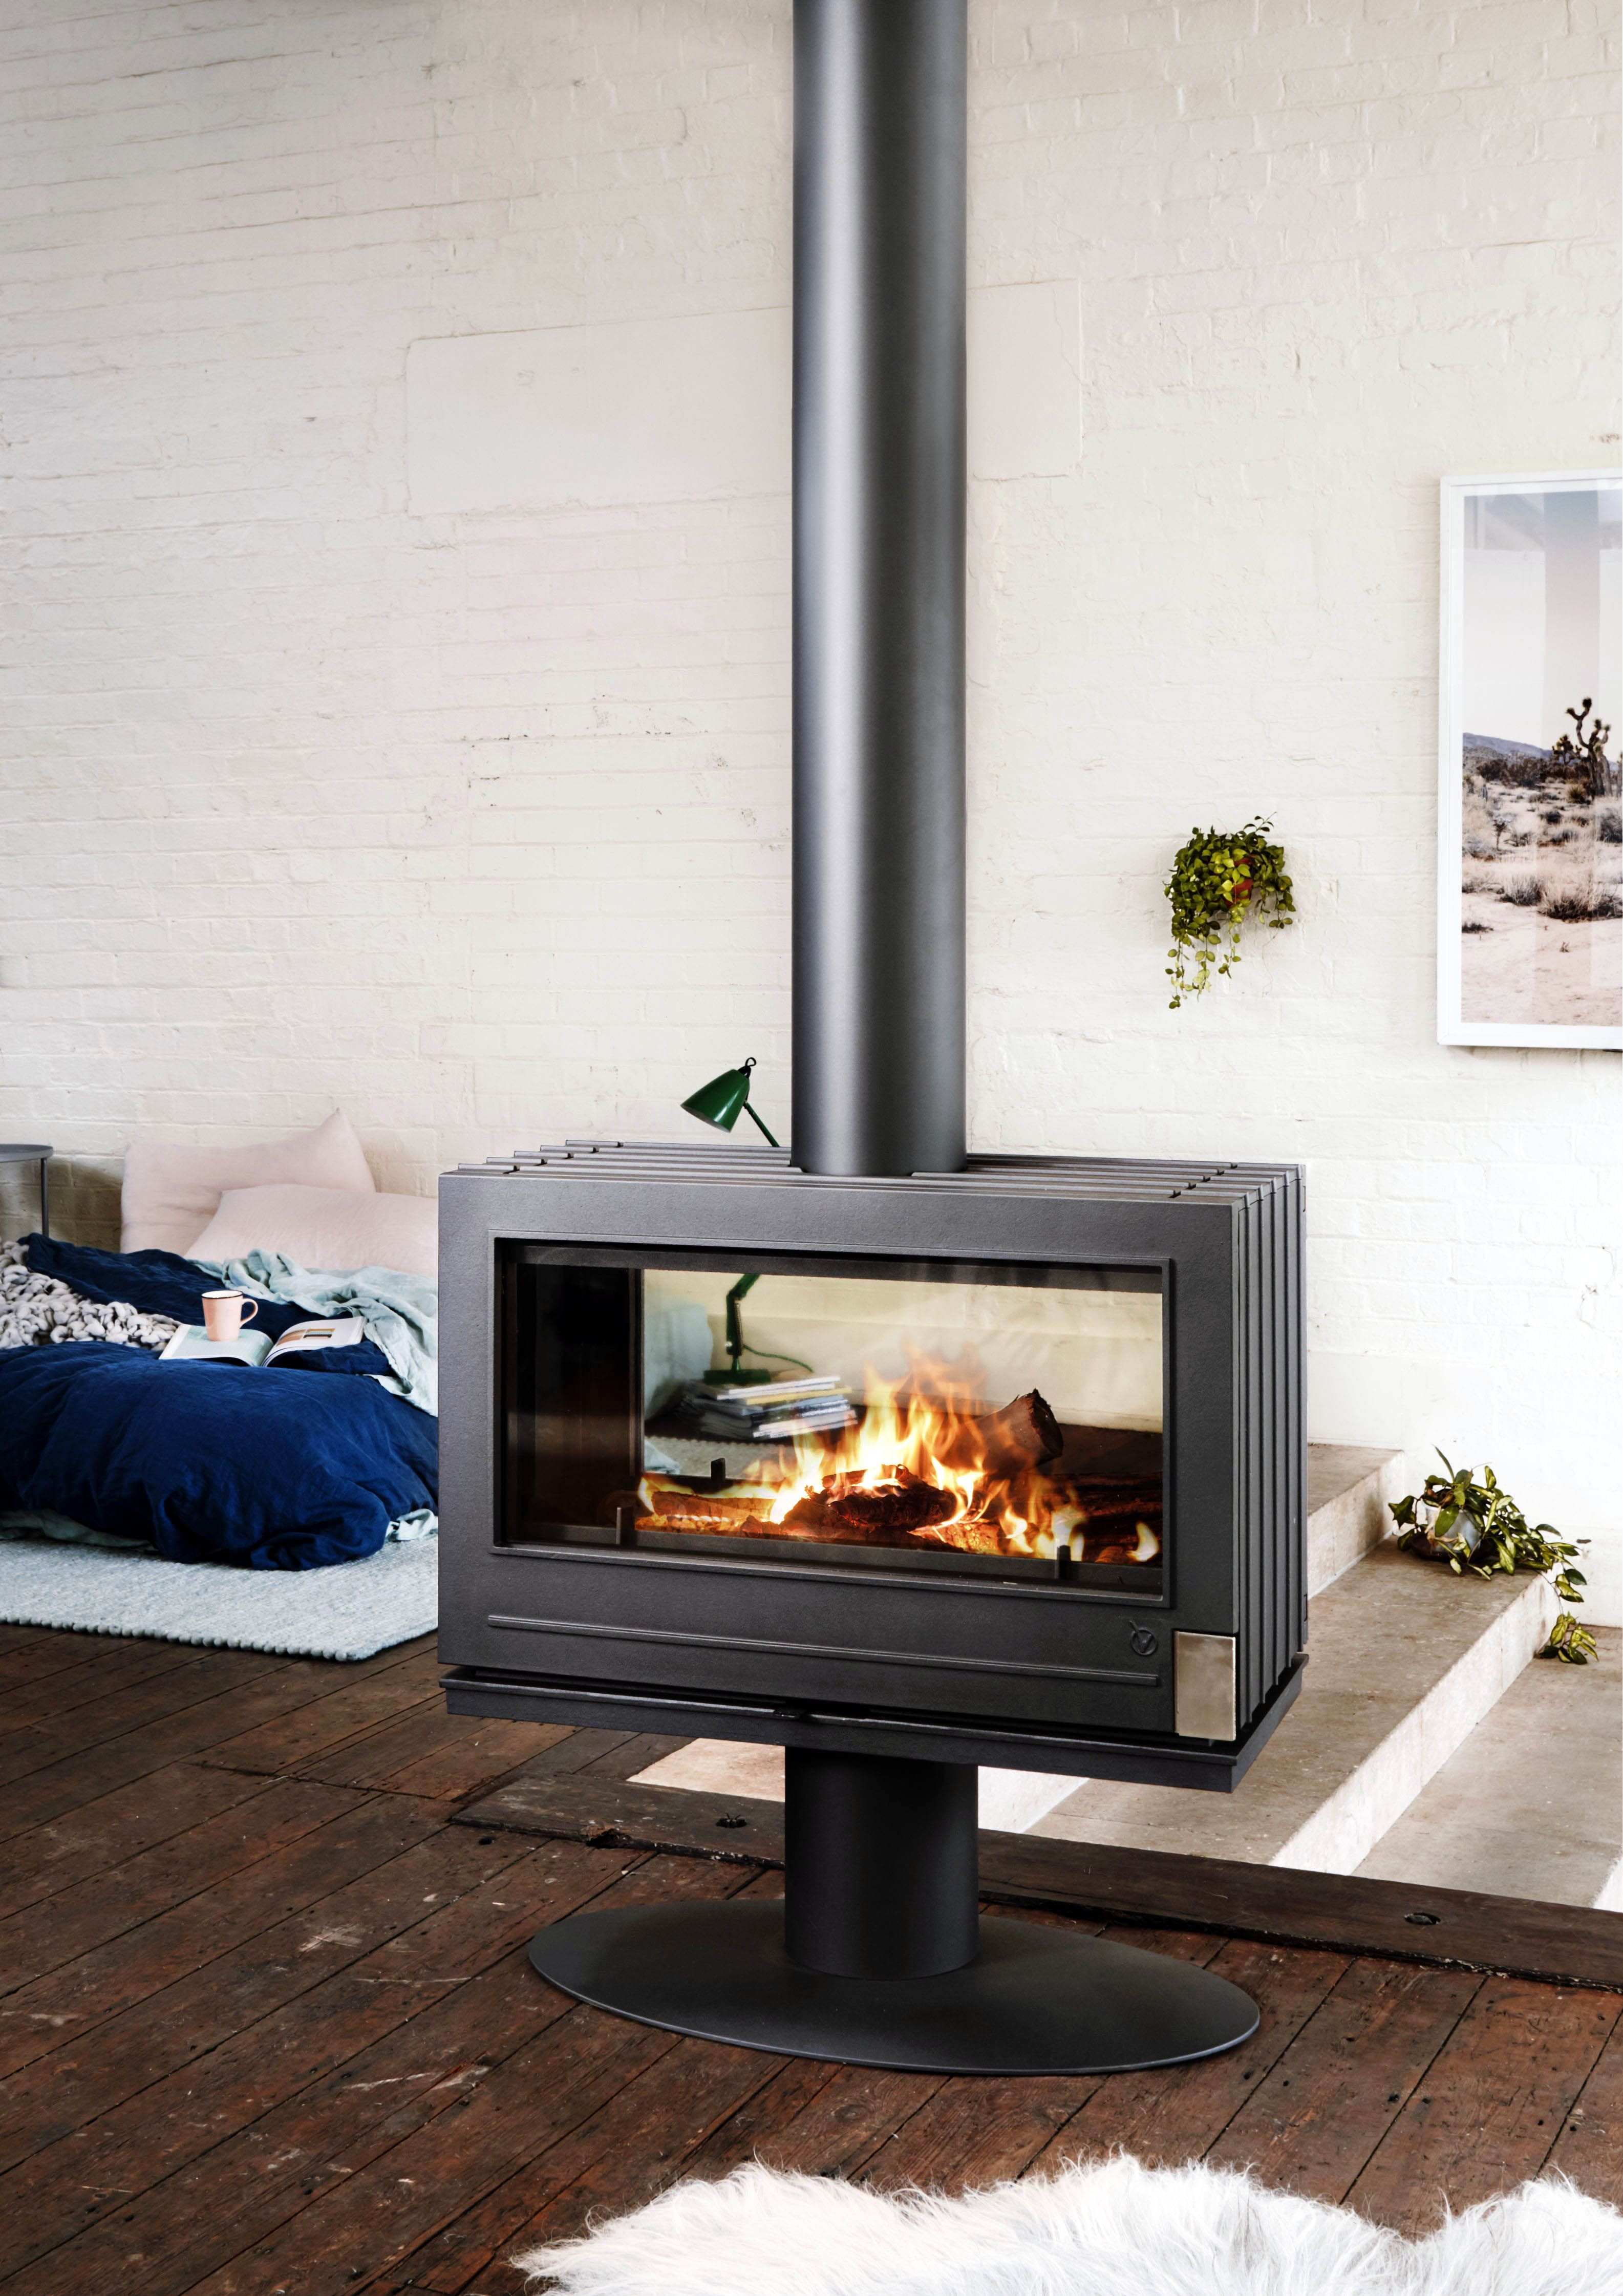 Discover Double Sided Electric Fireplace For Sale Only In Smart